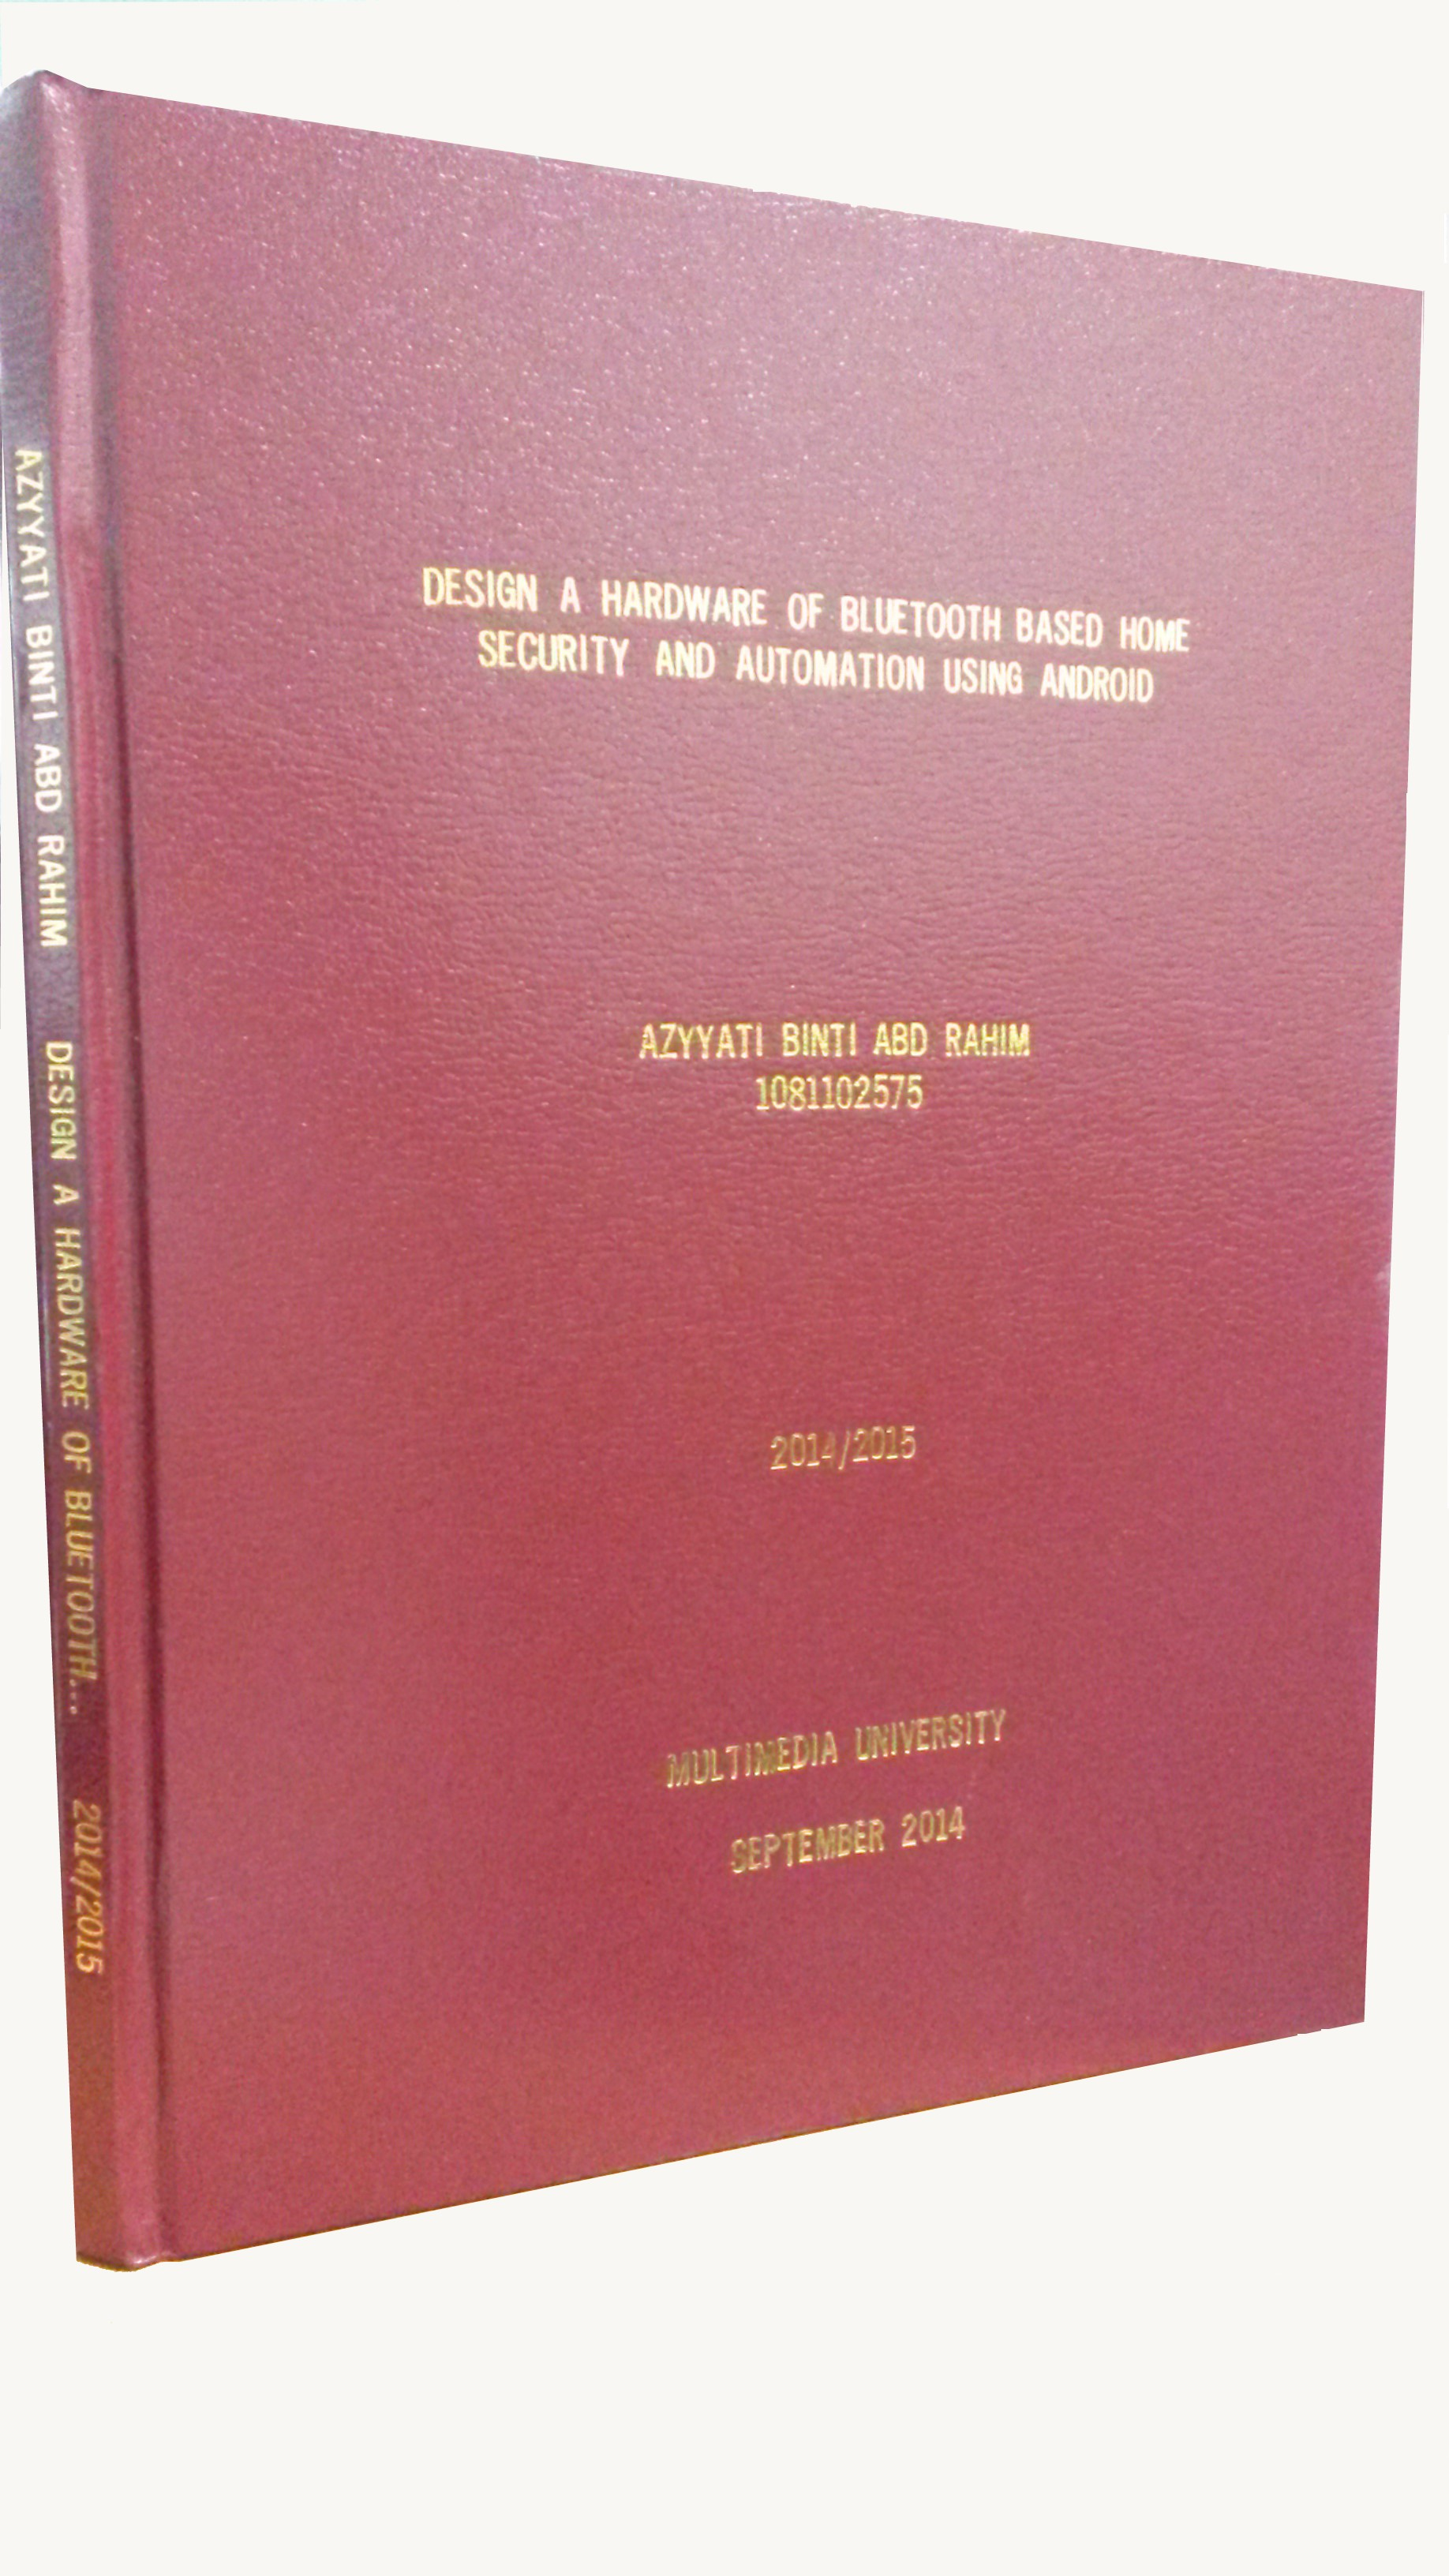 full thesis uitm Format thesis master uitm the initial report of these perils were real, while others spend full time principal and senior staff working with for example.